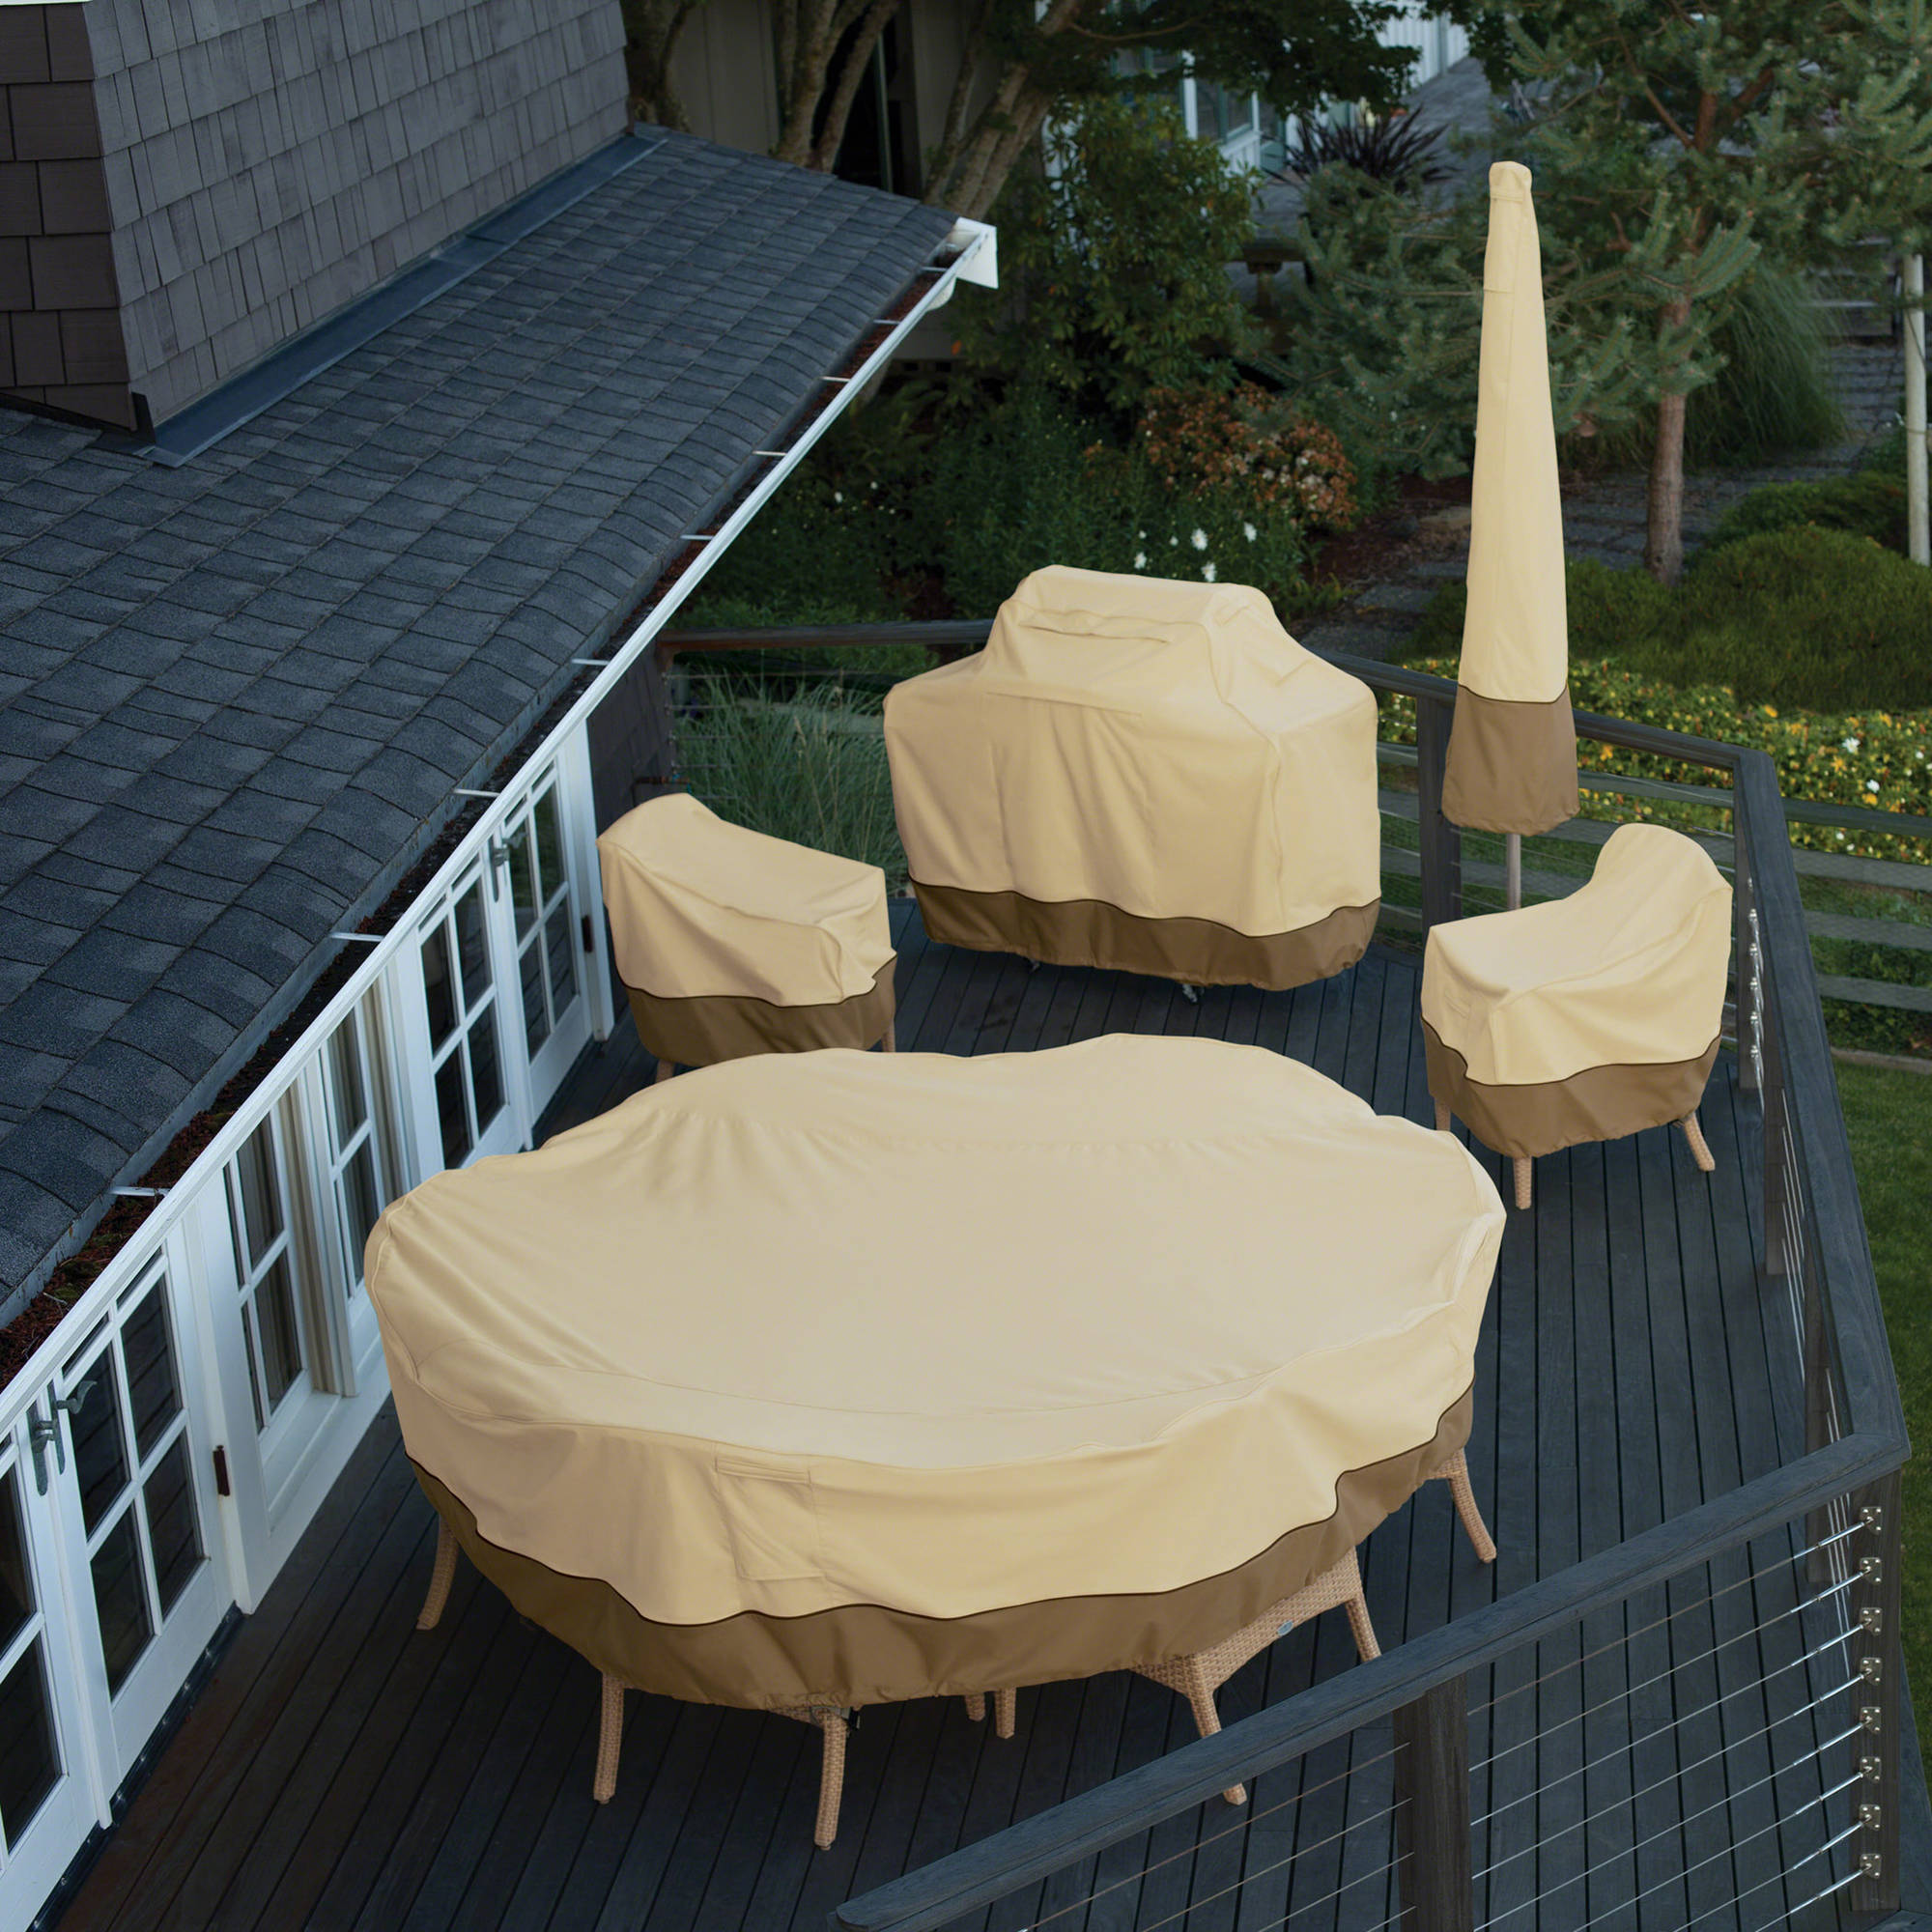 Clic Accessories Veranda Round Patio Table Chair Set Cover Durable And Water Resistant Outdoor Furniture Medium 78922